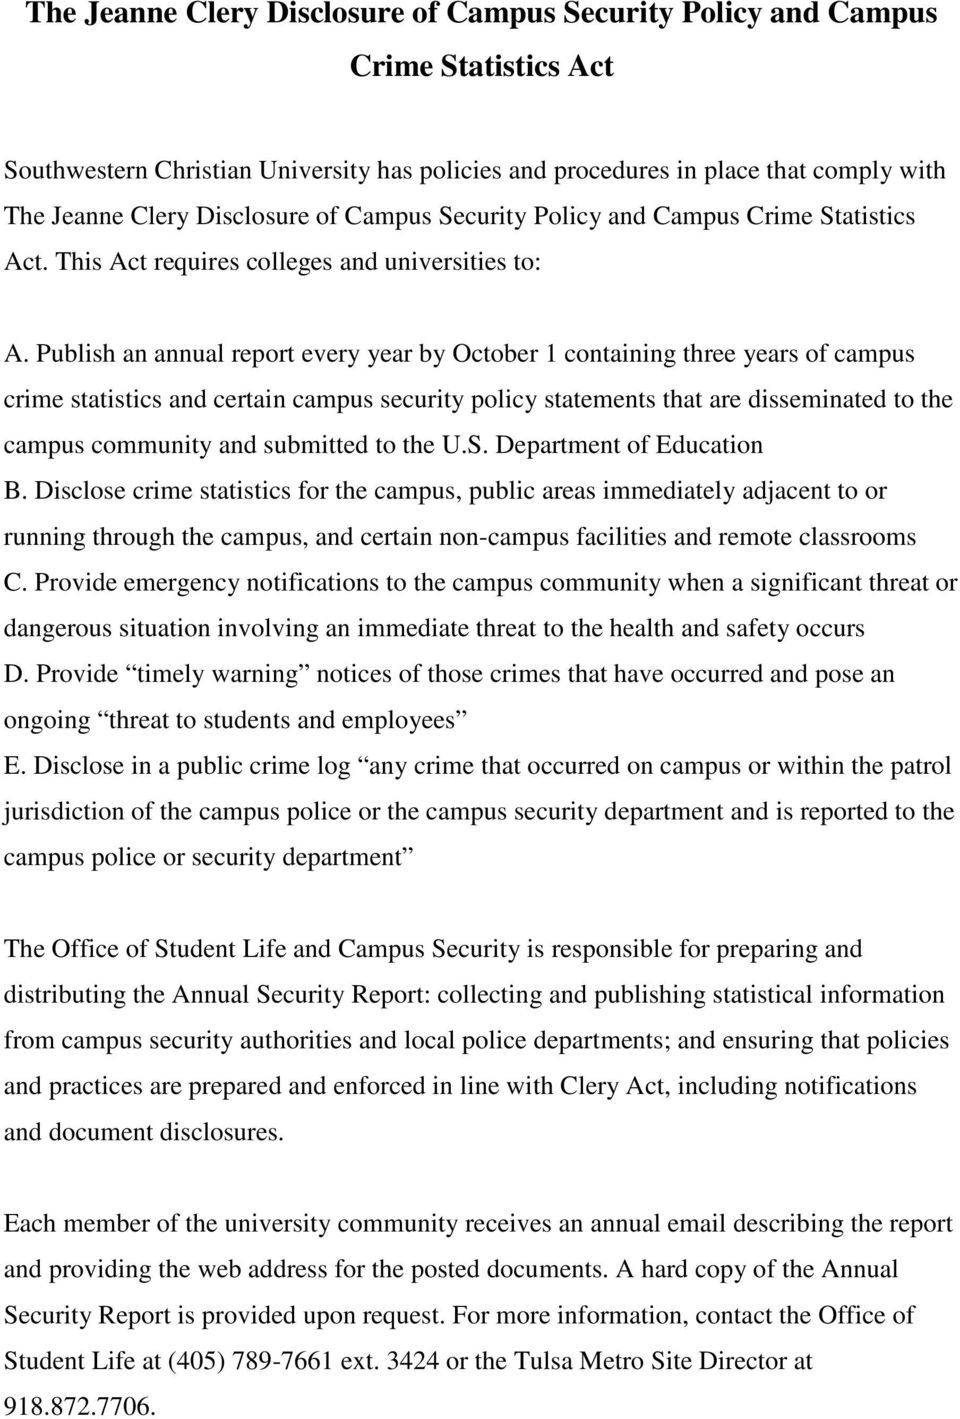 Publish an annual report every year by October 1 containing three years of campus crime statistics and certain campus security policy statements that are disseminated to the campus community and